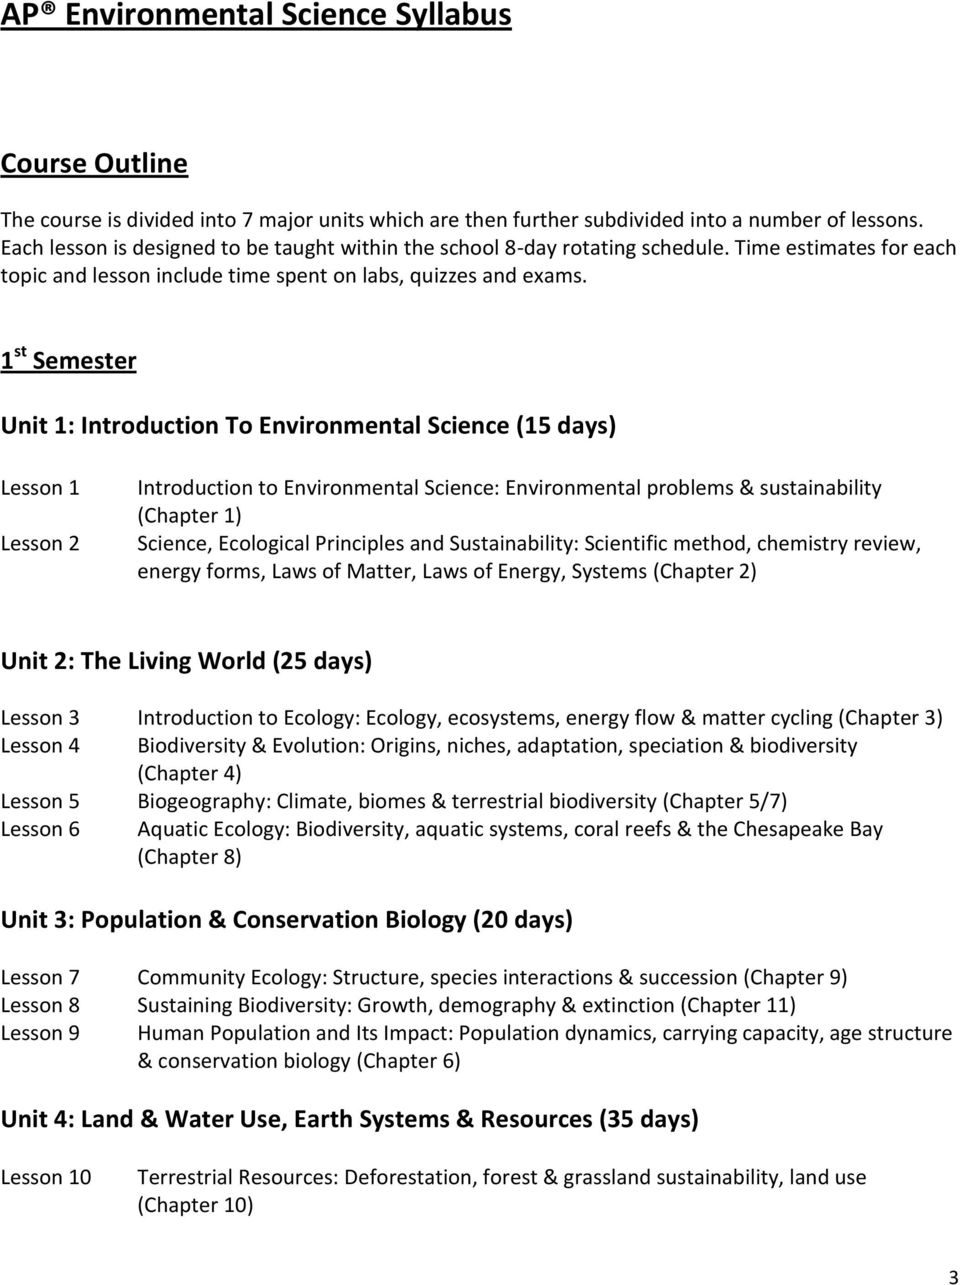 1 st Semester Unit 1: Introduction To Environmental Science (15 days) Lesson 1 Lesson 2 Introduction to Environmental Science: Environmental problems & sustainability (Chapter 1) Science, Ecological